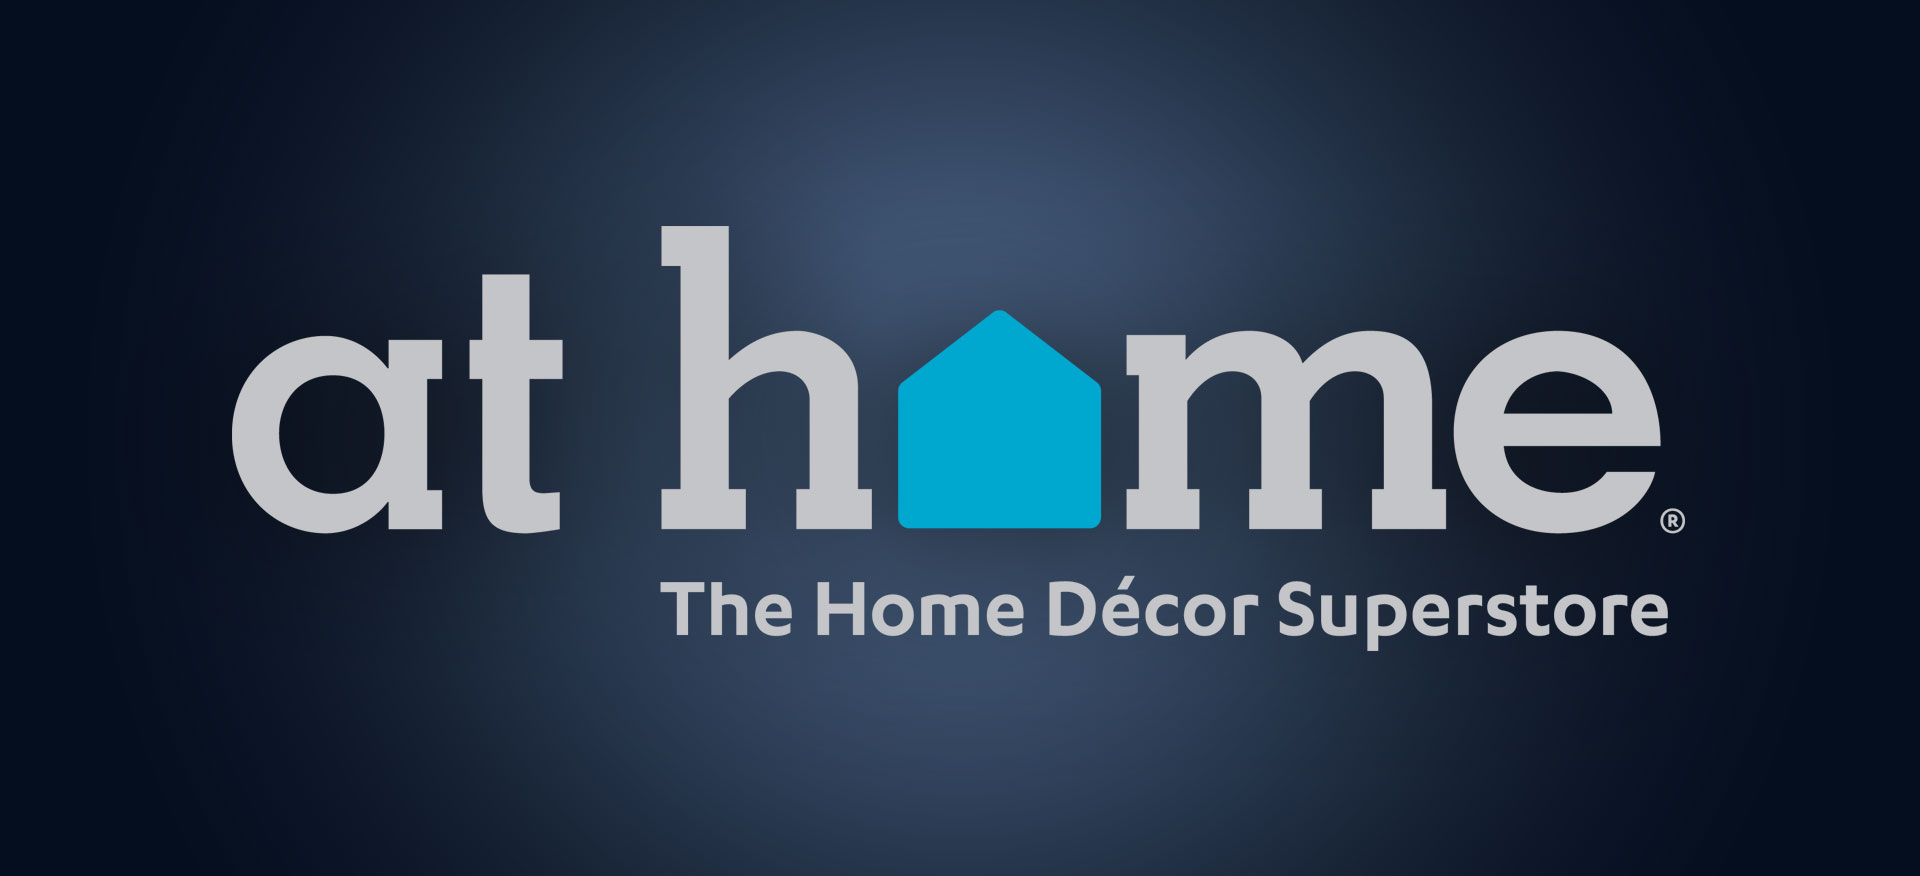 Home D Cor Superstore Coming To Rapid City